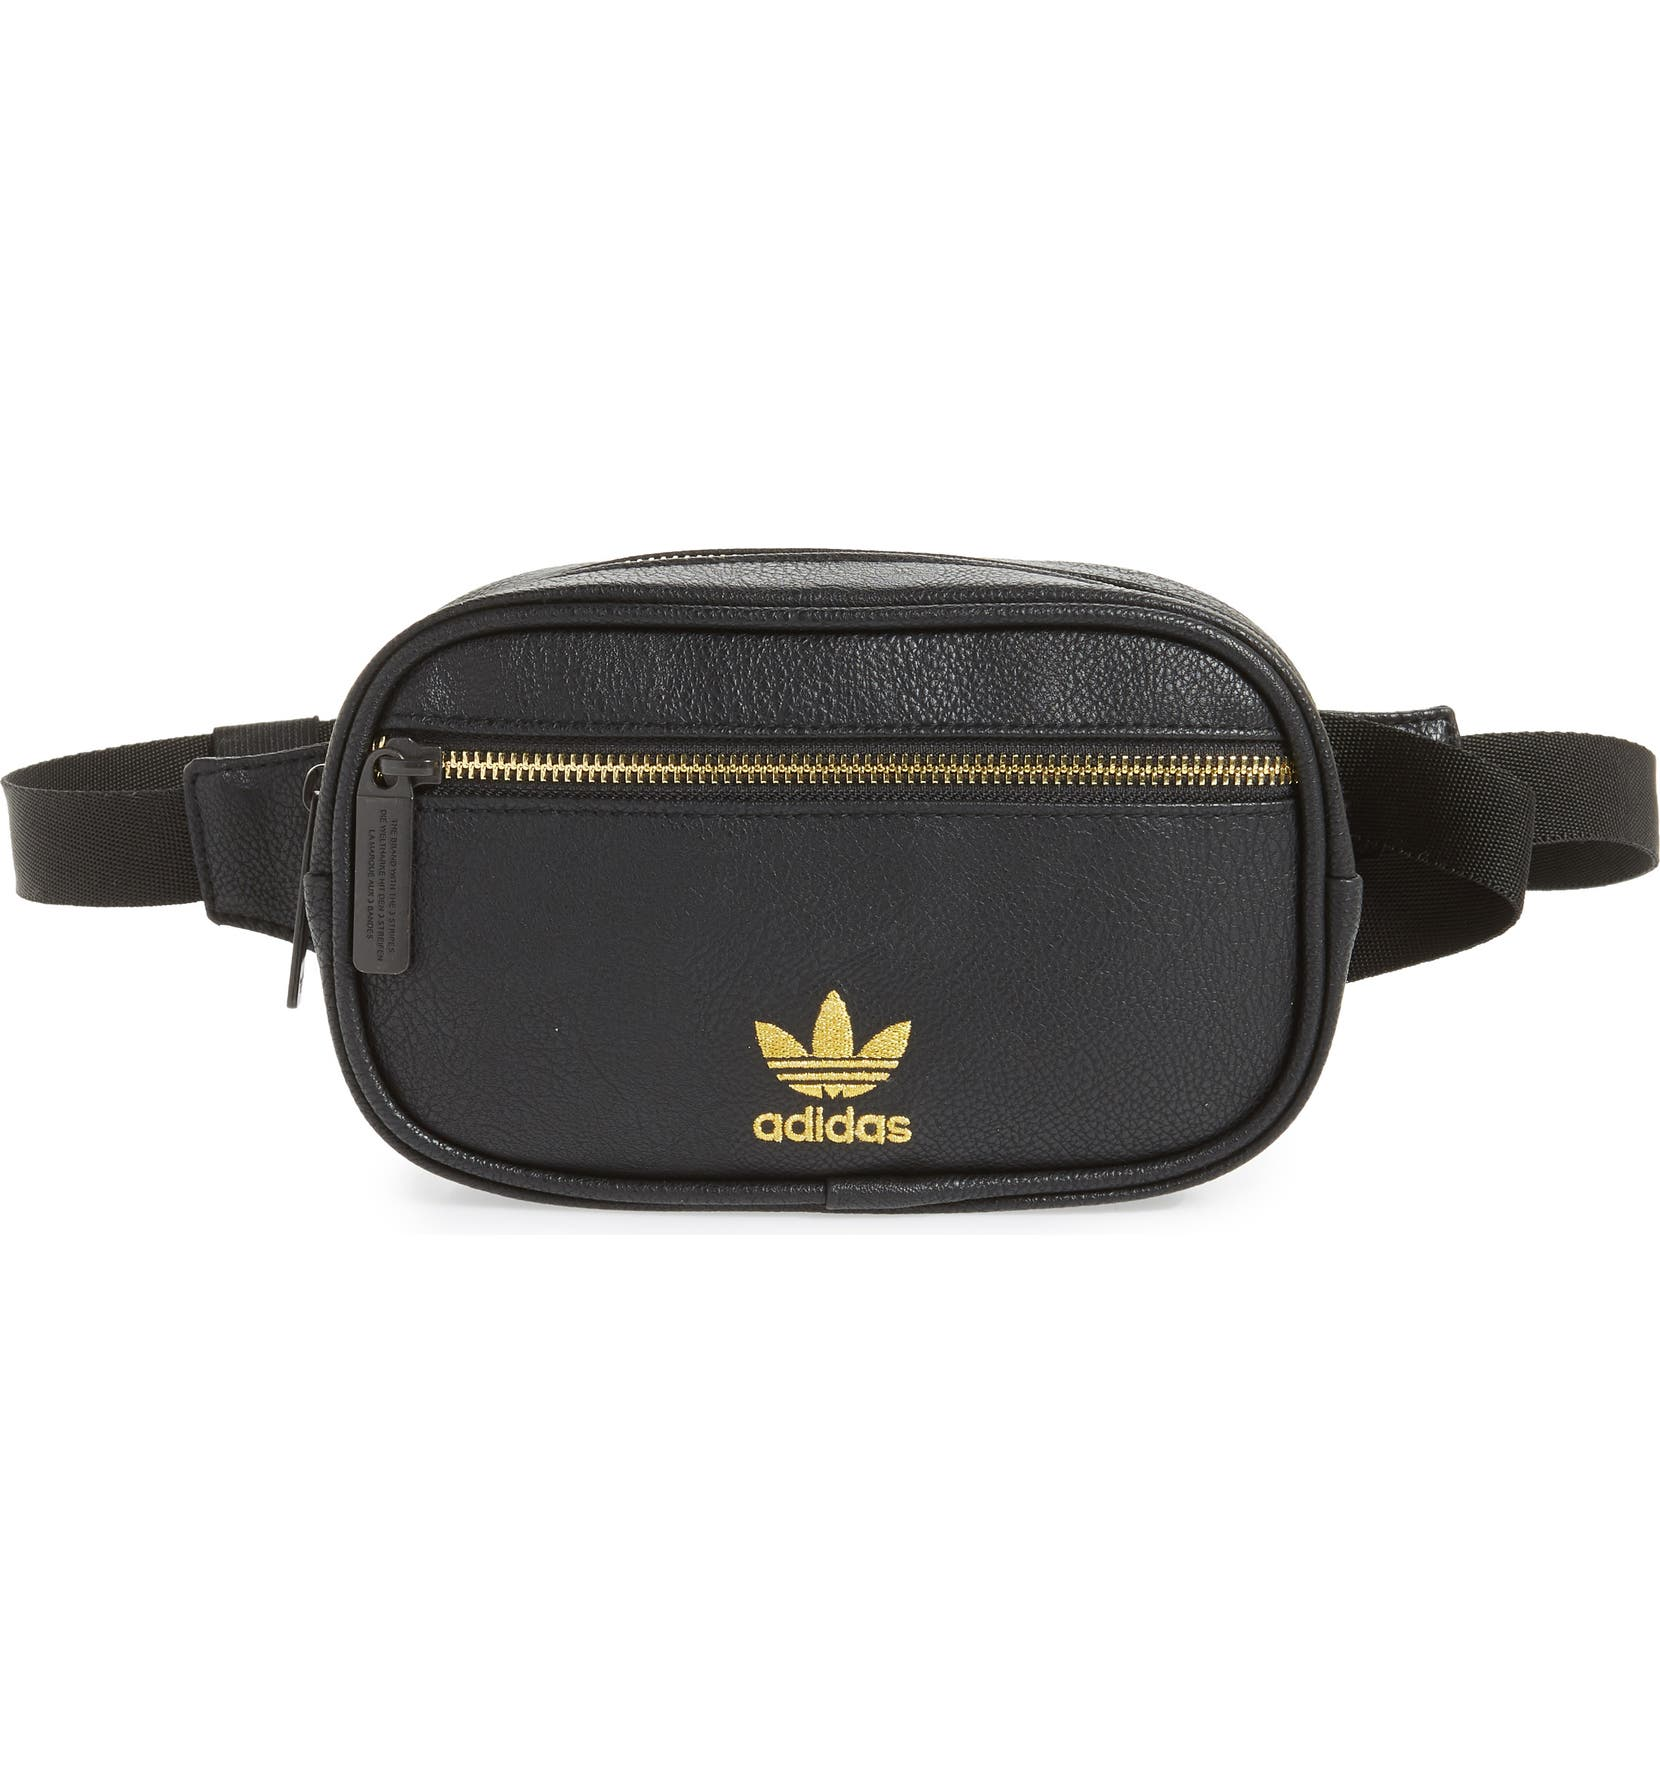 adidas Ori Faux Leather Fanny Pack  c4acb6bf712bc